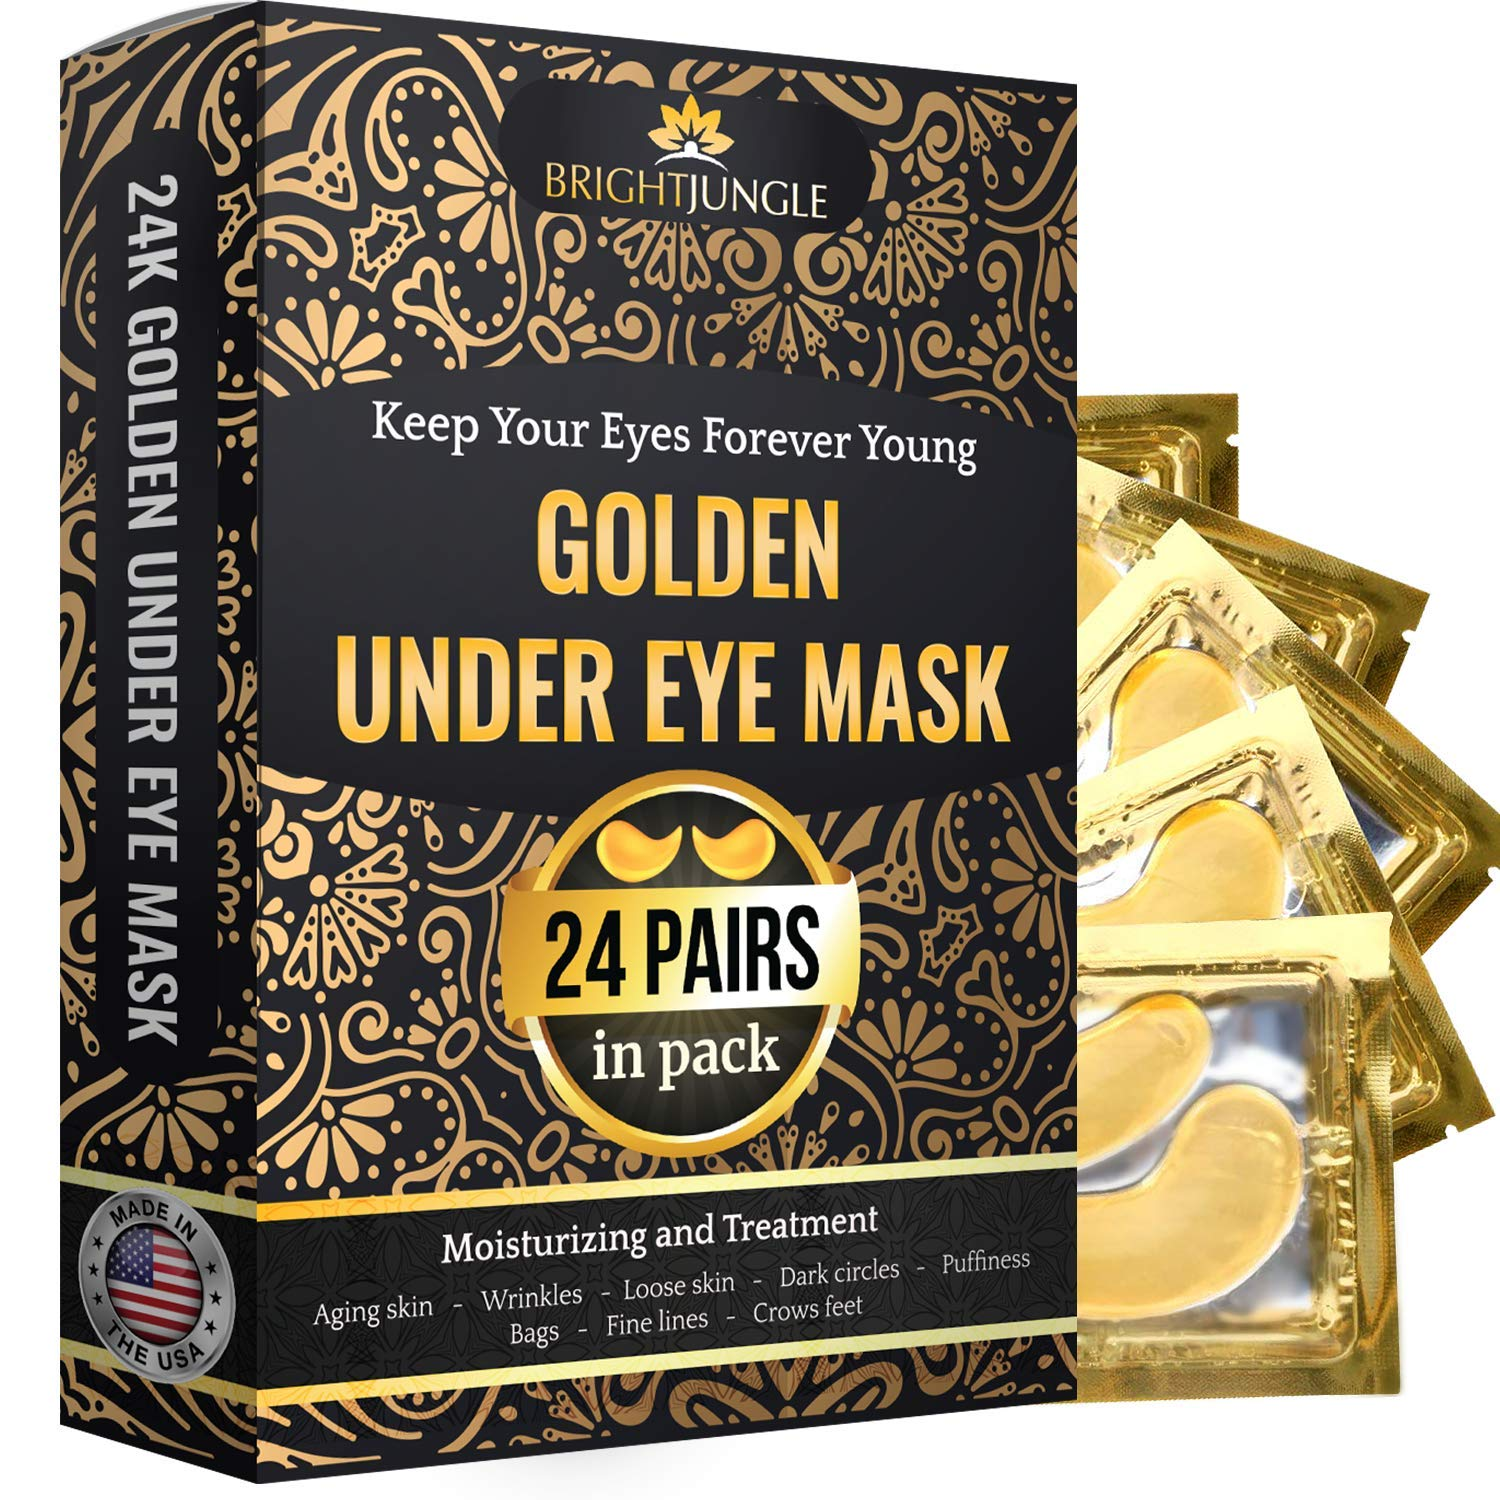 BrightJungle Under Eye Collagen Patch, 24K Gold Anti-Aging Mask, Pads for Puffy Eyes & Bags, Dark Circles and Wrinkles, with Hyaluronic Acid, Hydrogel, Deep Moisturizing Improves elasticity, 24 Pairs by BrightJungle